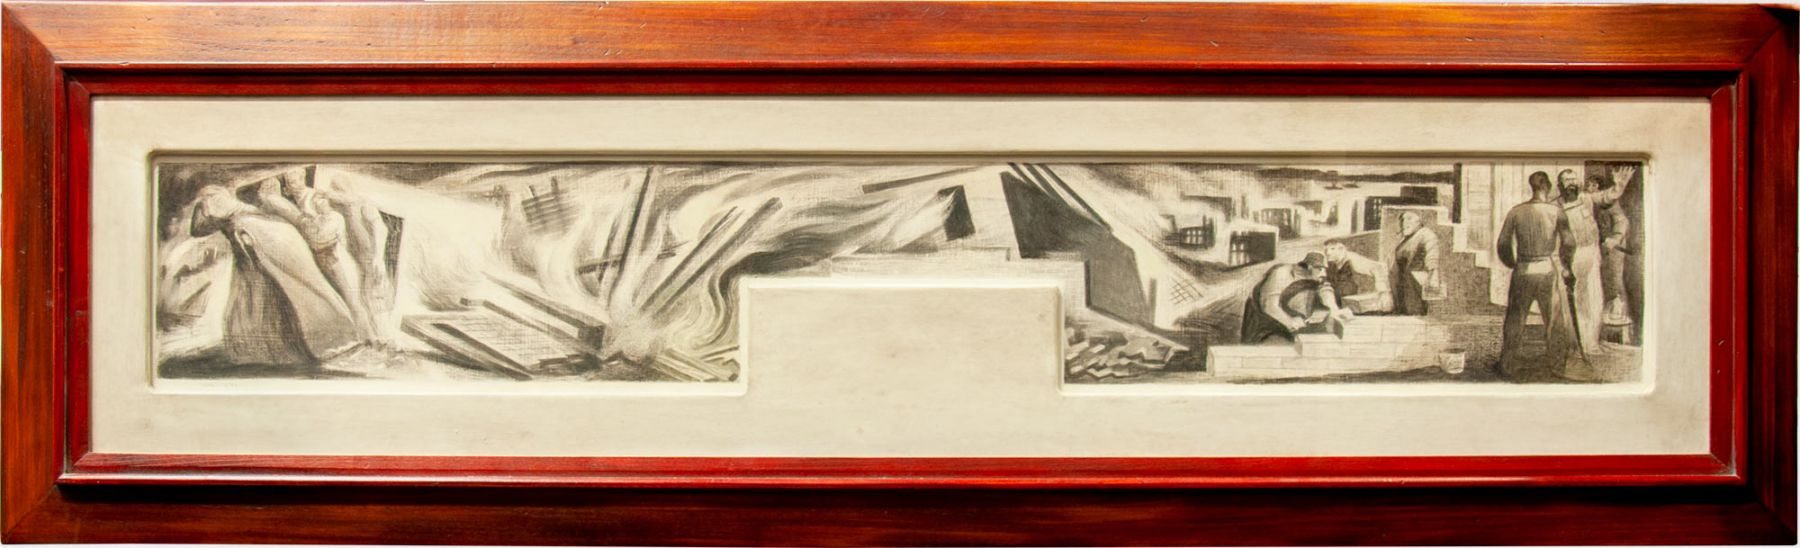 RICHARD HAINES (1906-1984), Rebuilding from the Great Earthquake, c. 1938